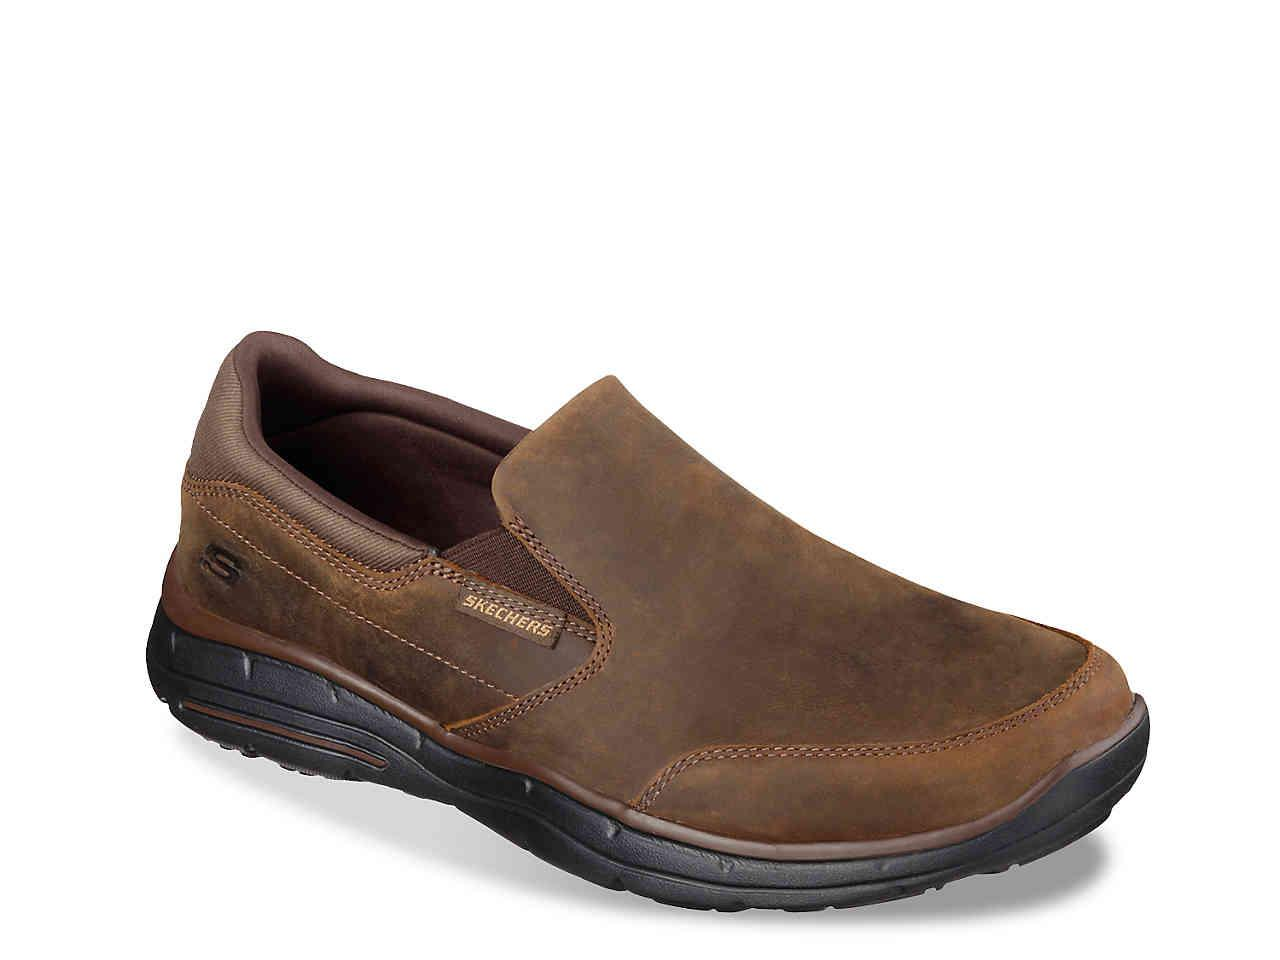 9fa2506e120 Skechers - Brown Relaxed Fit Glides Calculous Slip-on for Men - Lyst. View  fullscreen